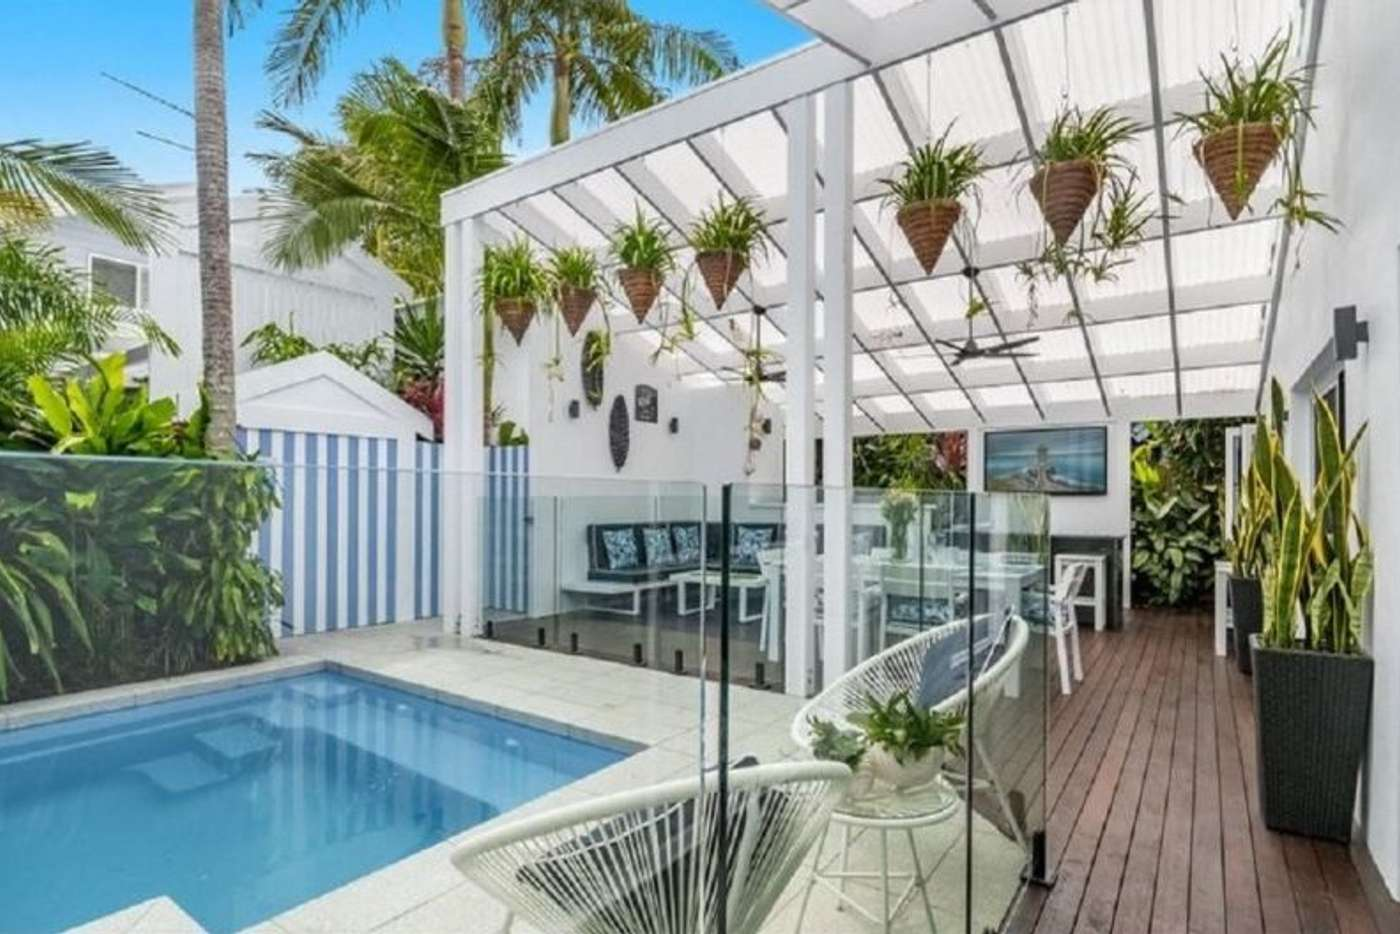 Main view of Homely house listing, 41 Ruskin Street, Byron Bay NSW 2481